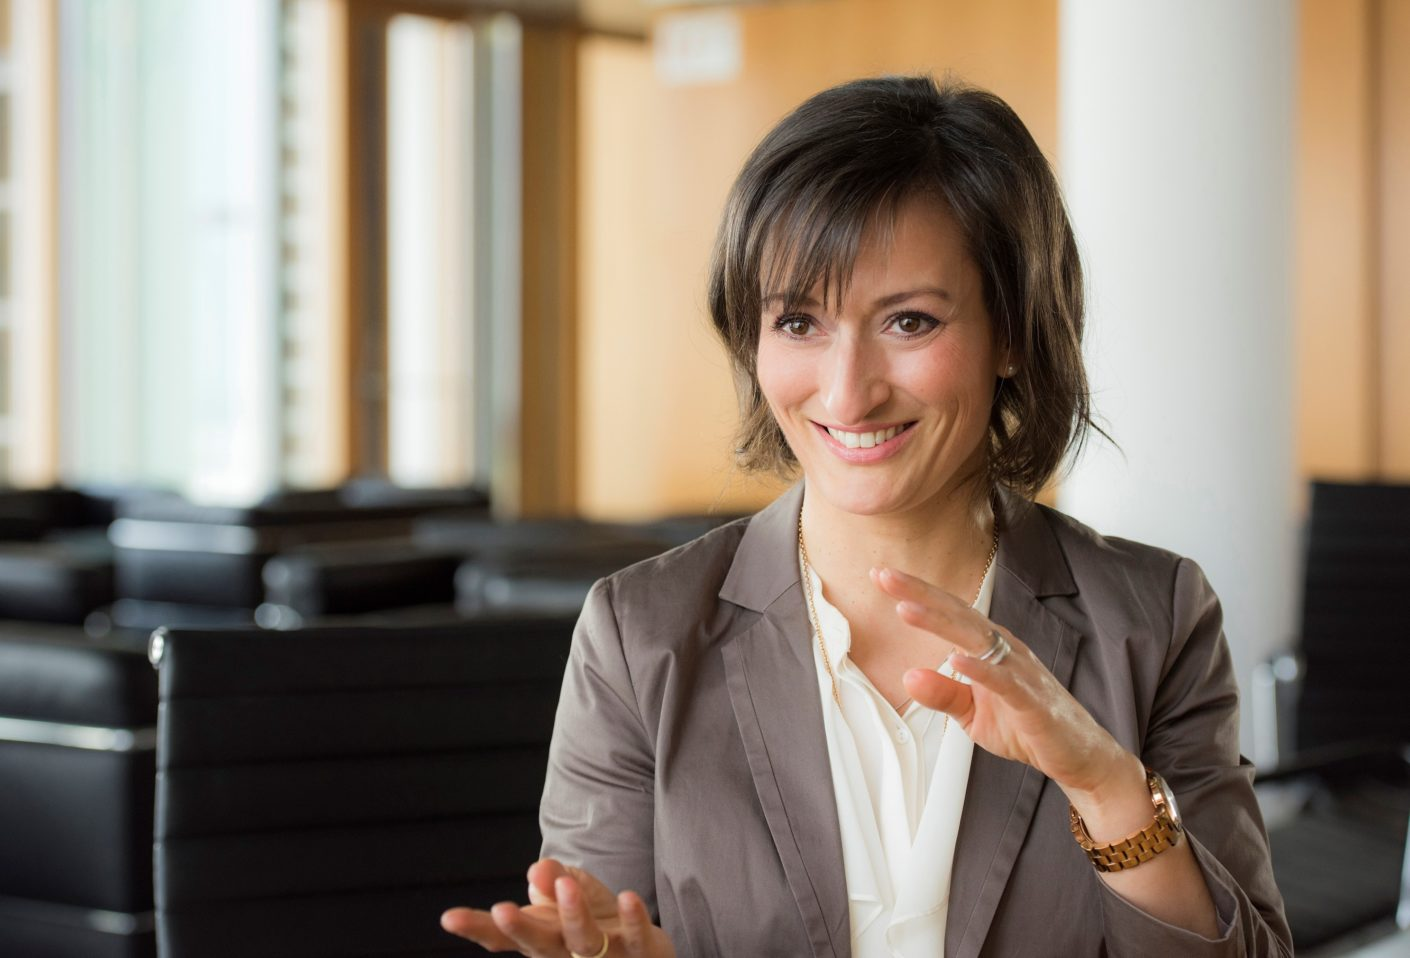 Sonia Wedell-Castellano has been Global Director of Domotex since 2018.